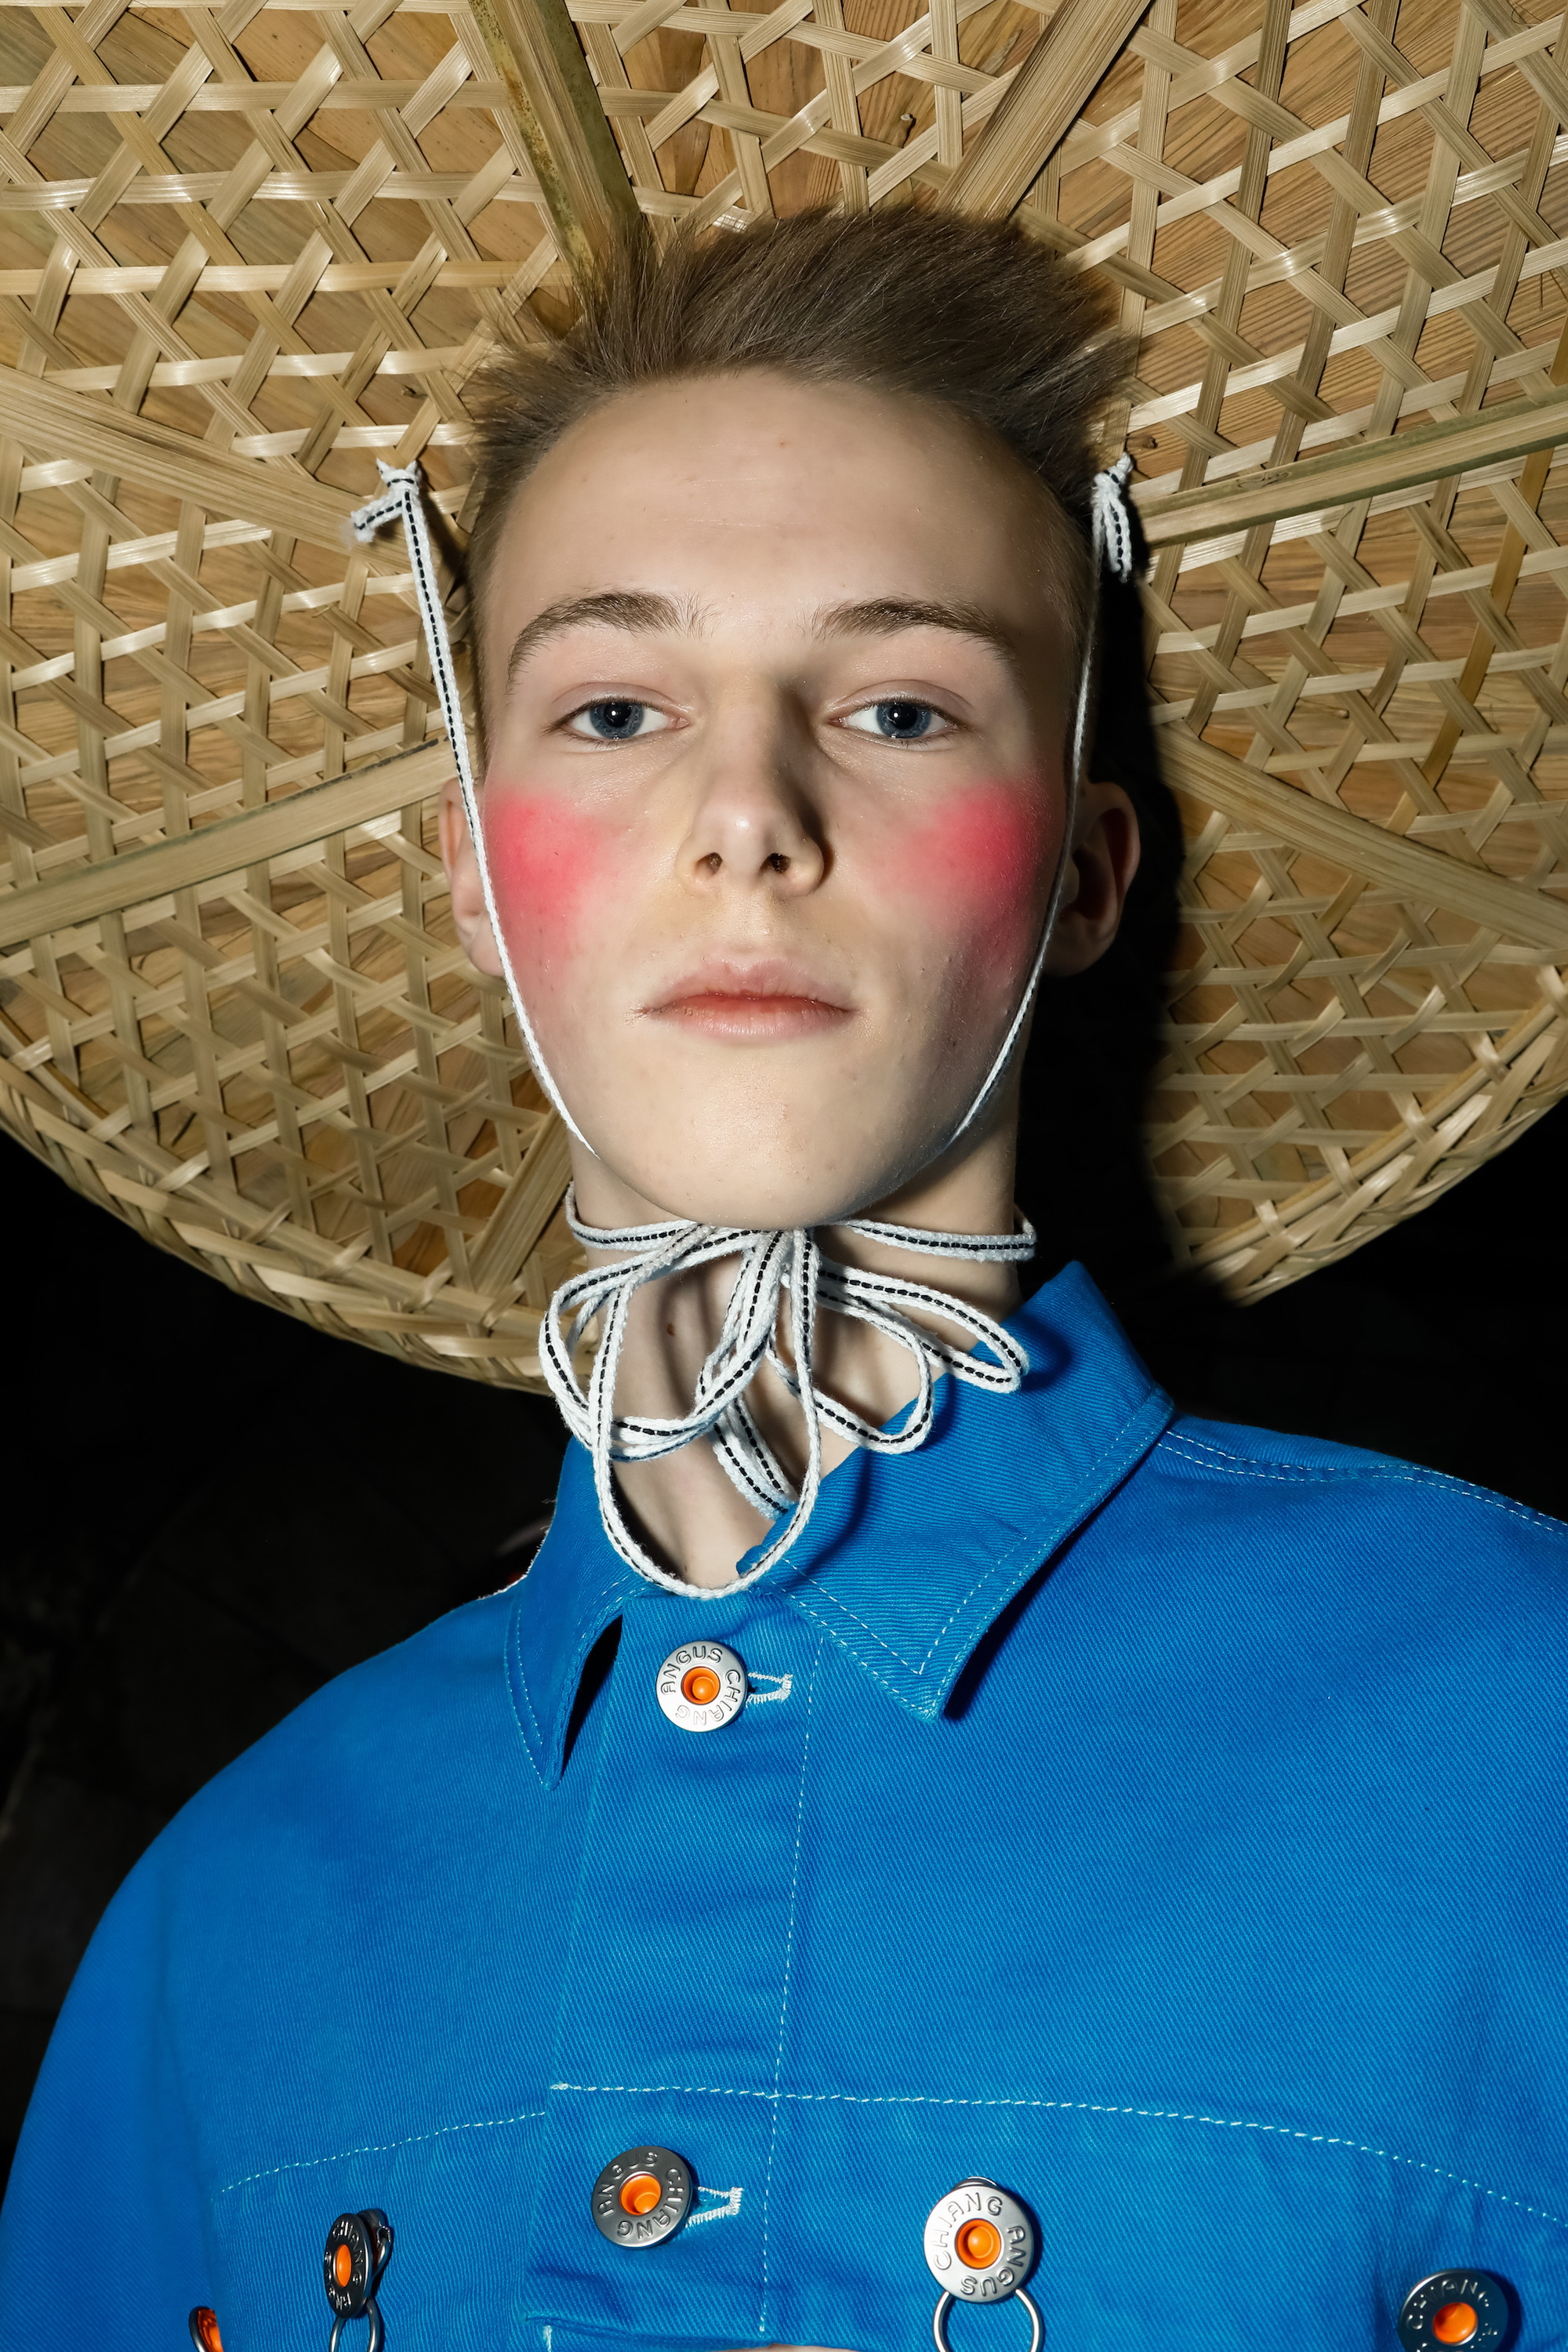 Angus Chiang Menswear Collection Fall Winter 2019 Paris Fashion Week bonnet